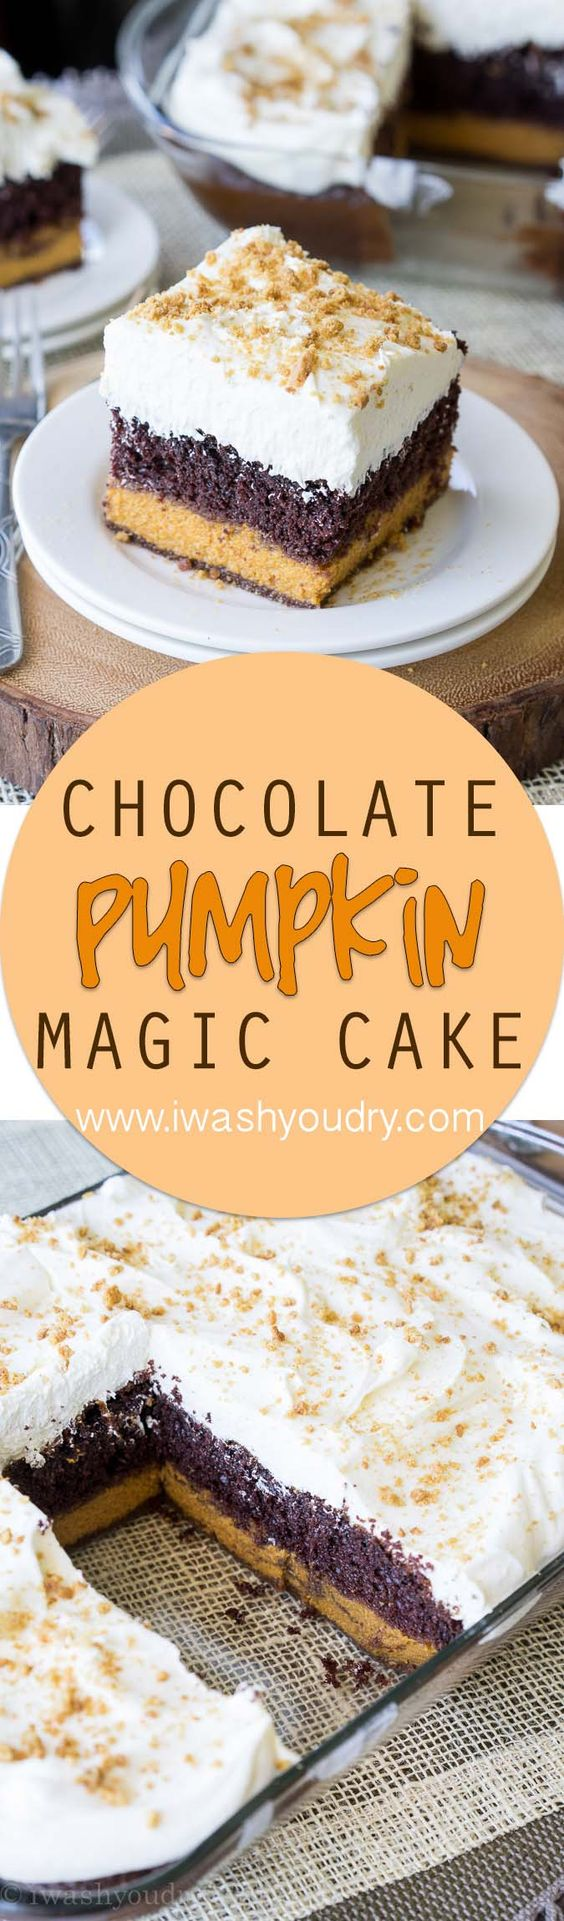 Three layers of deliciousness in this Chocolate Pumpkin Magic Cake! Seriously the best dessert this Fall!